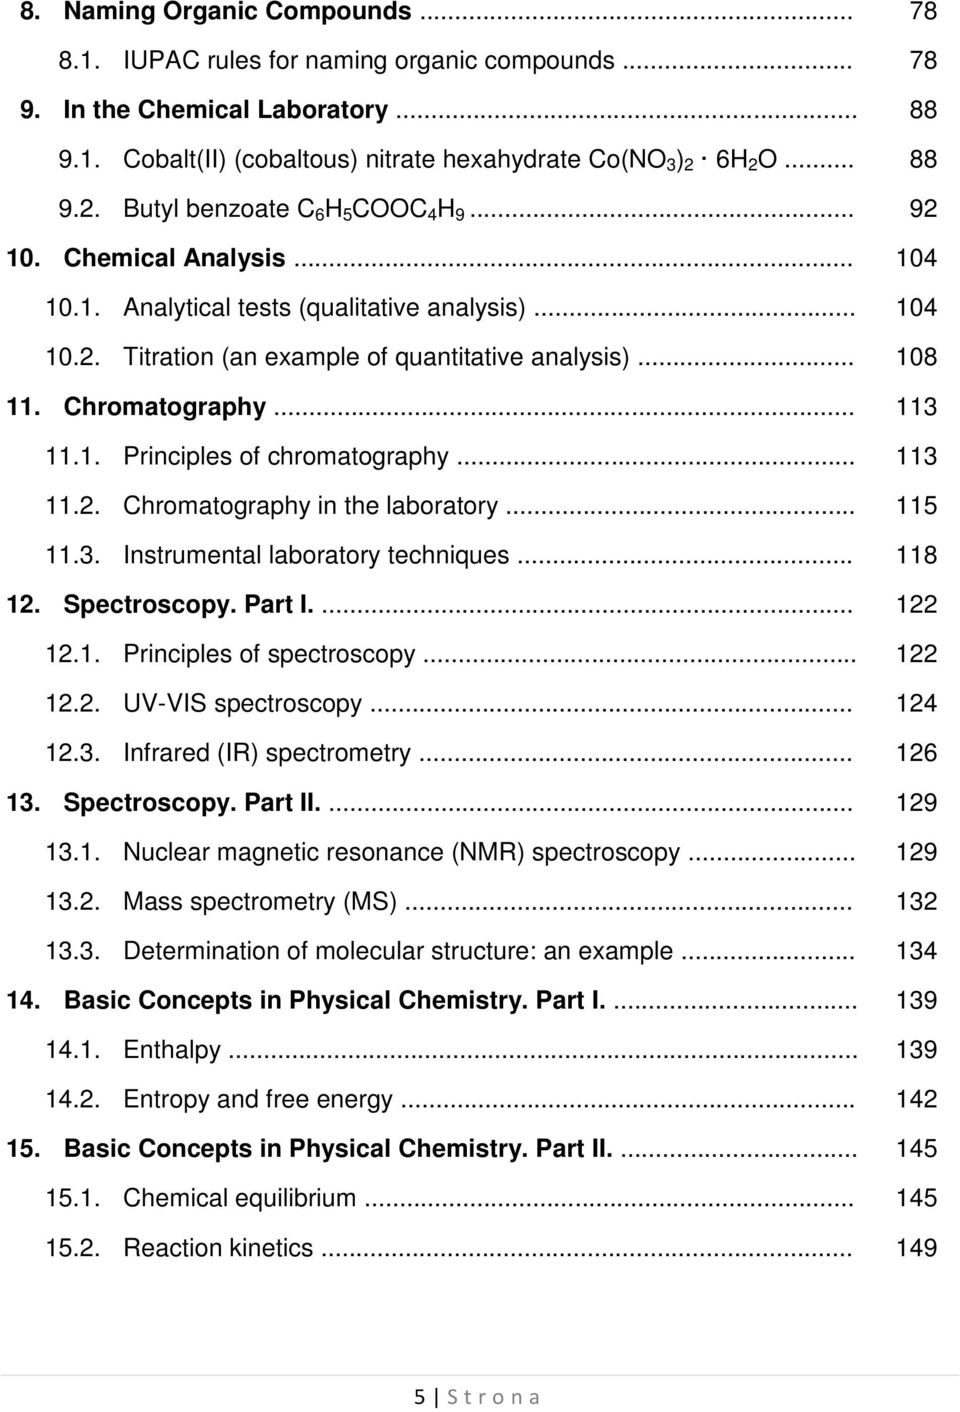 .. 108 11. Chromatography... 113 11.1. Principles of chromatography... 113 11.2. Chromatography in the laboratory... 115 11.3. Instrumental laboratory techniques... 118 12. Spectroscopy. Part I.